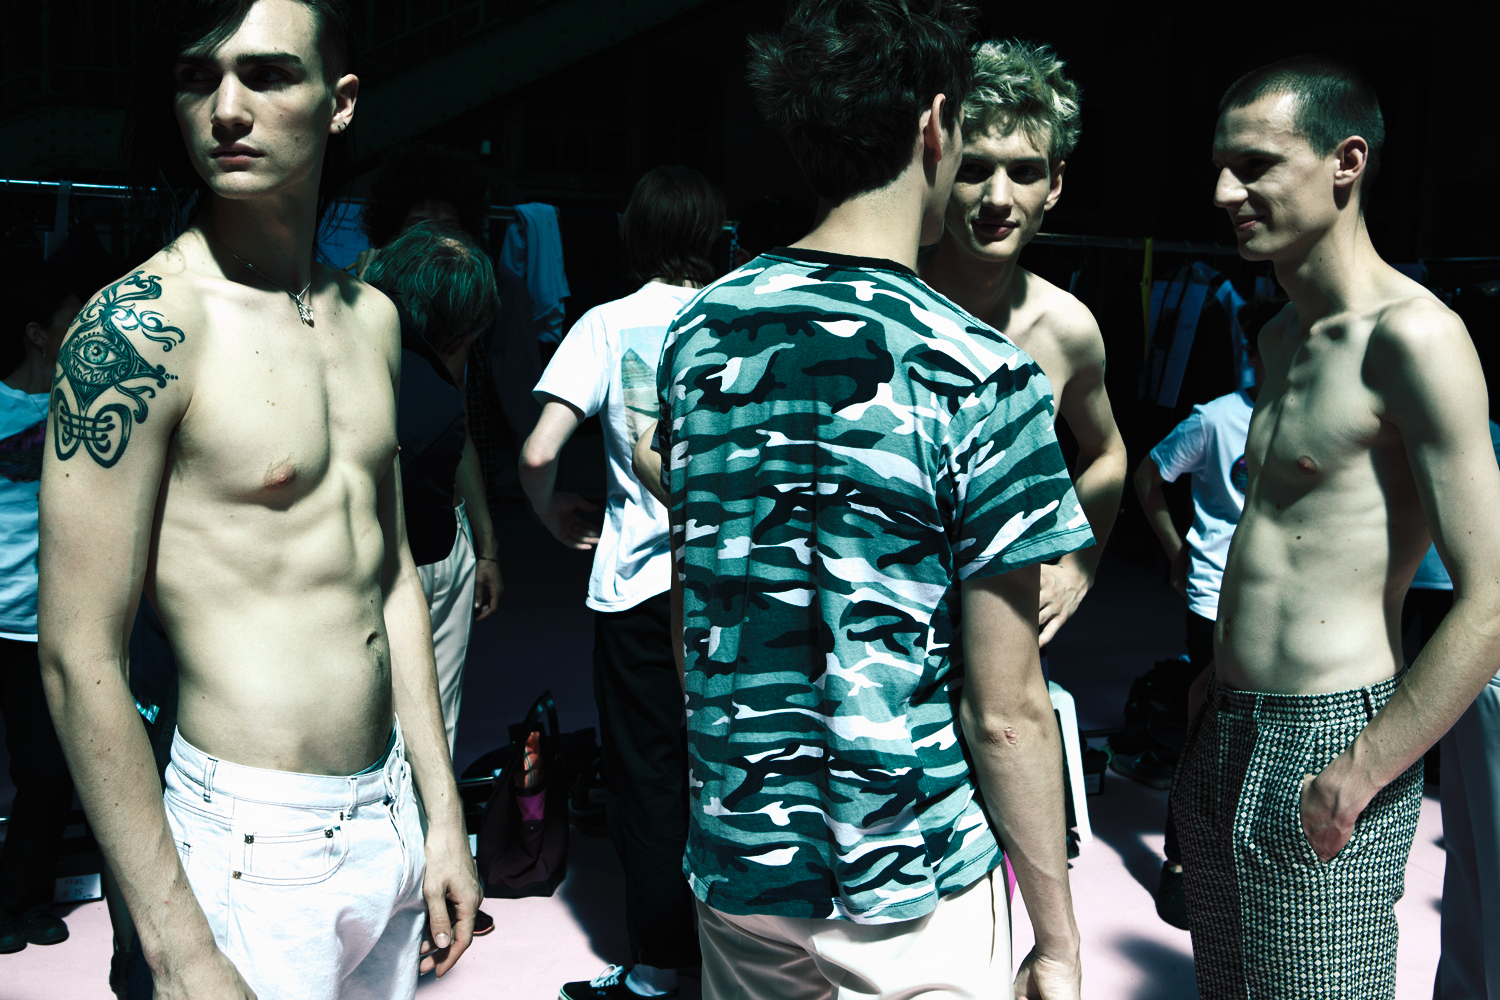 HERO MAGAZINE SS14 PAUL SMITH BACKSTAGE Alexandre Sallé de Chou IMG_8655